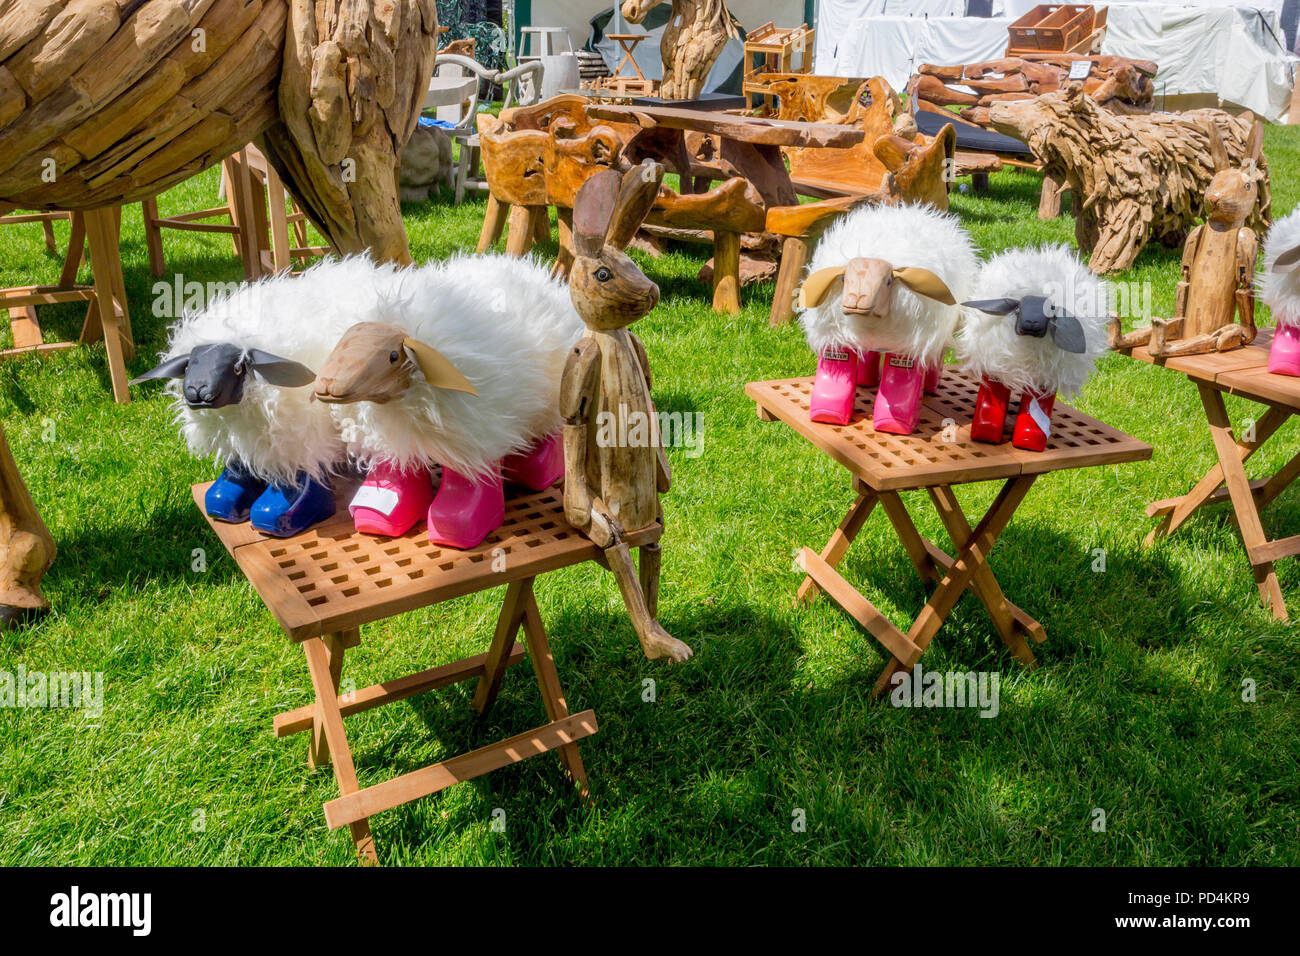 A collection of humourous models of sheep wearing colourful wellington boots at the 2018 Malvern RHS Spring Show, Worcestershire, England, UK - Stock Image